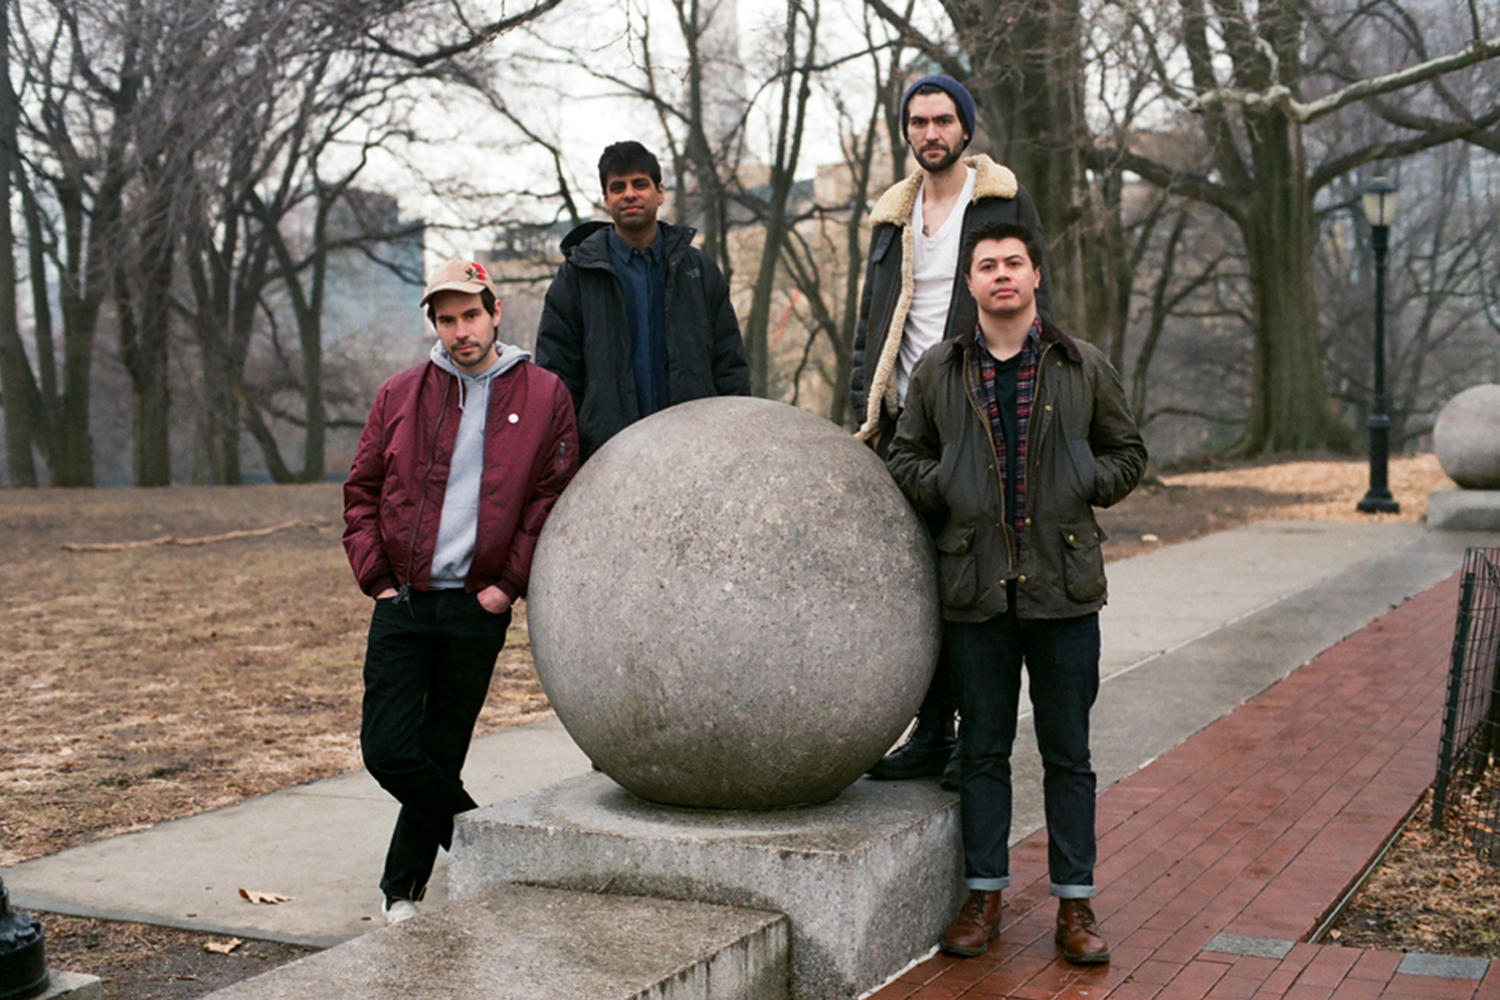 Big Ups announce new album 'Two Parts Together' with 'PPP'